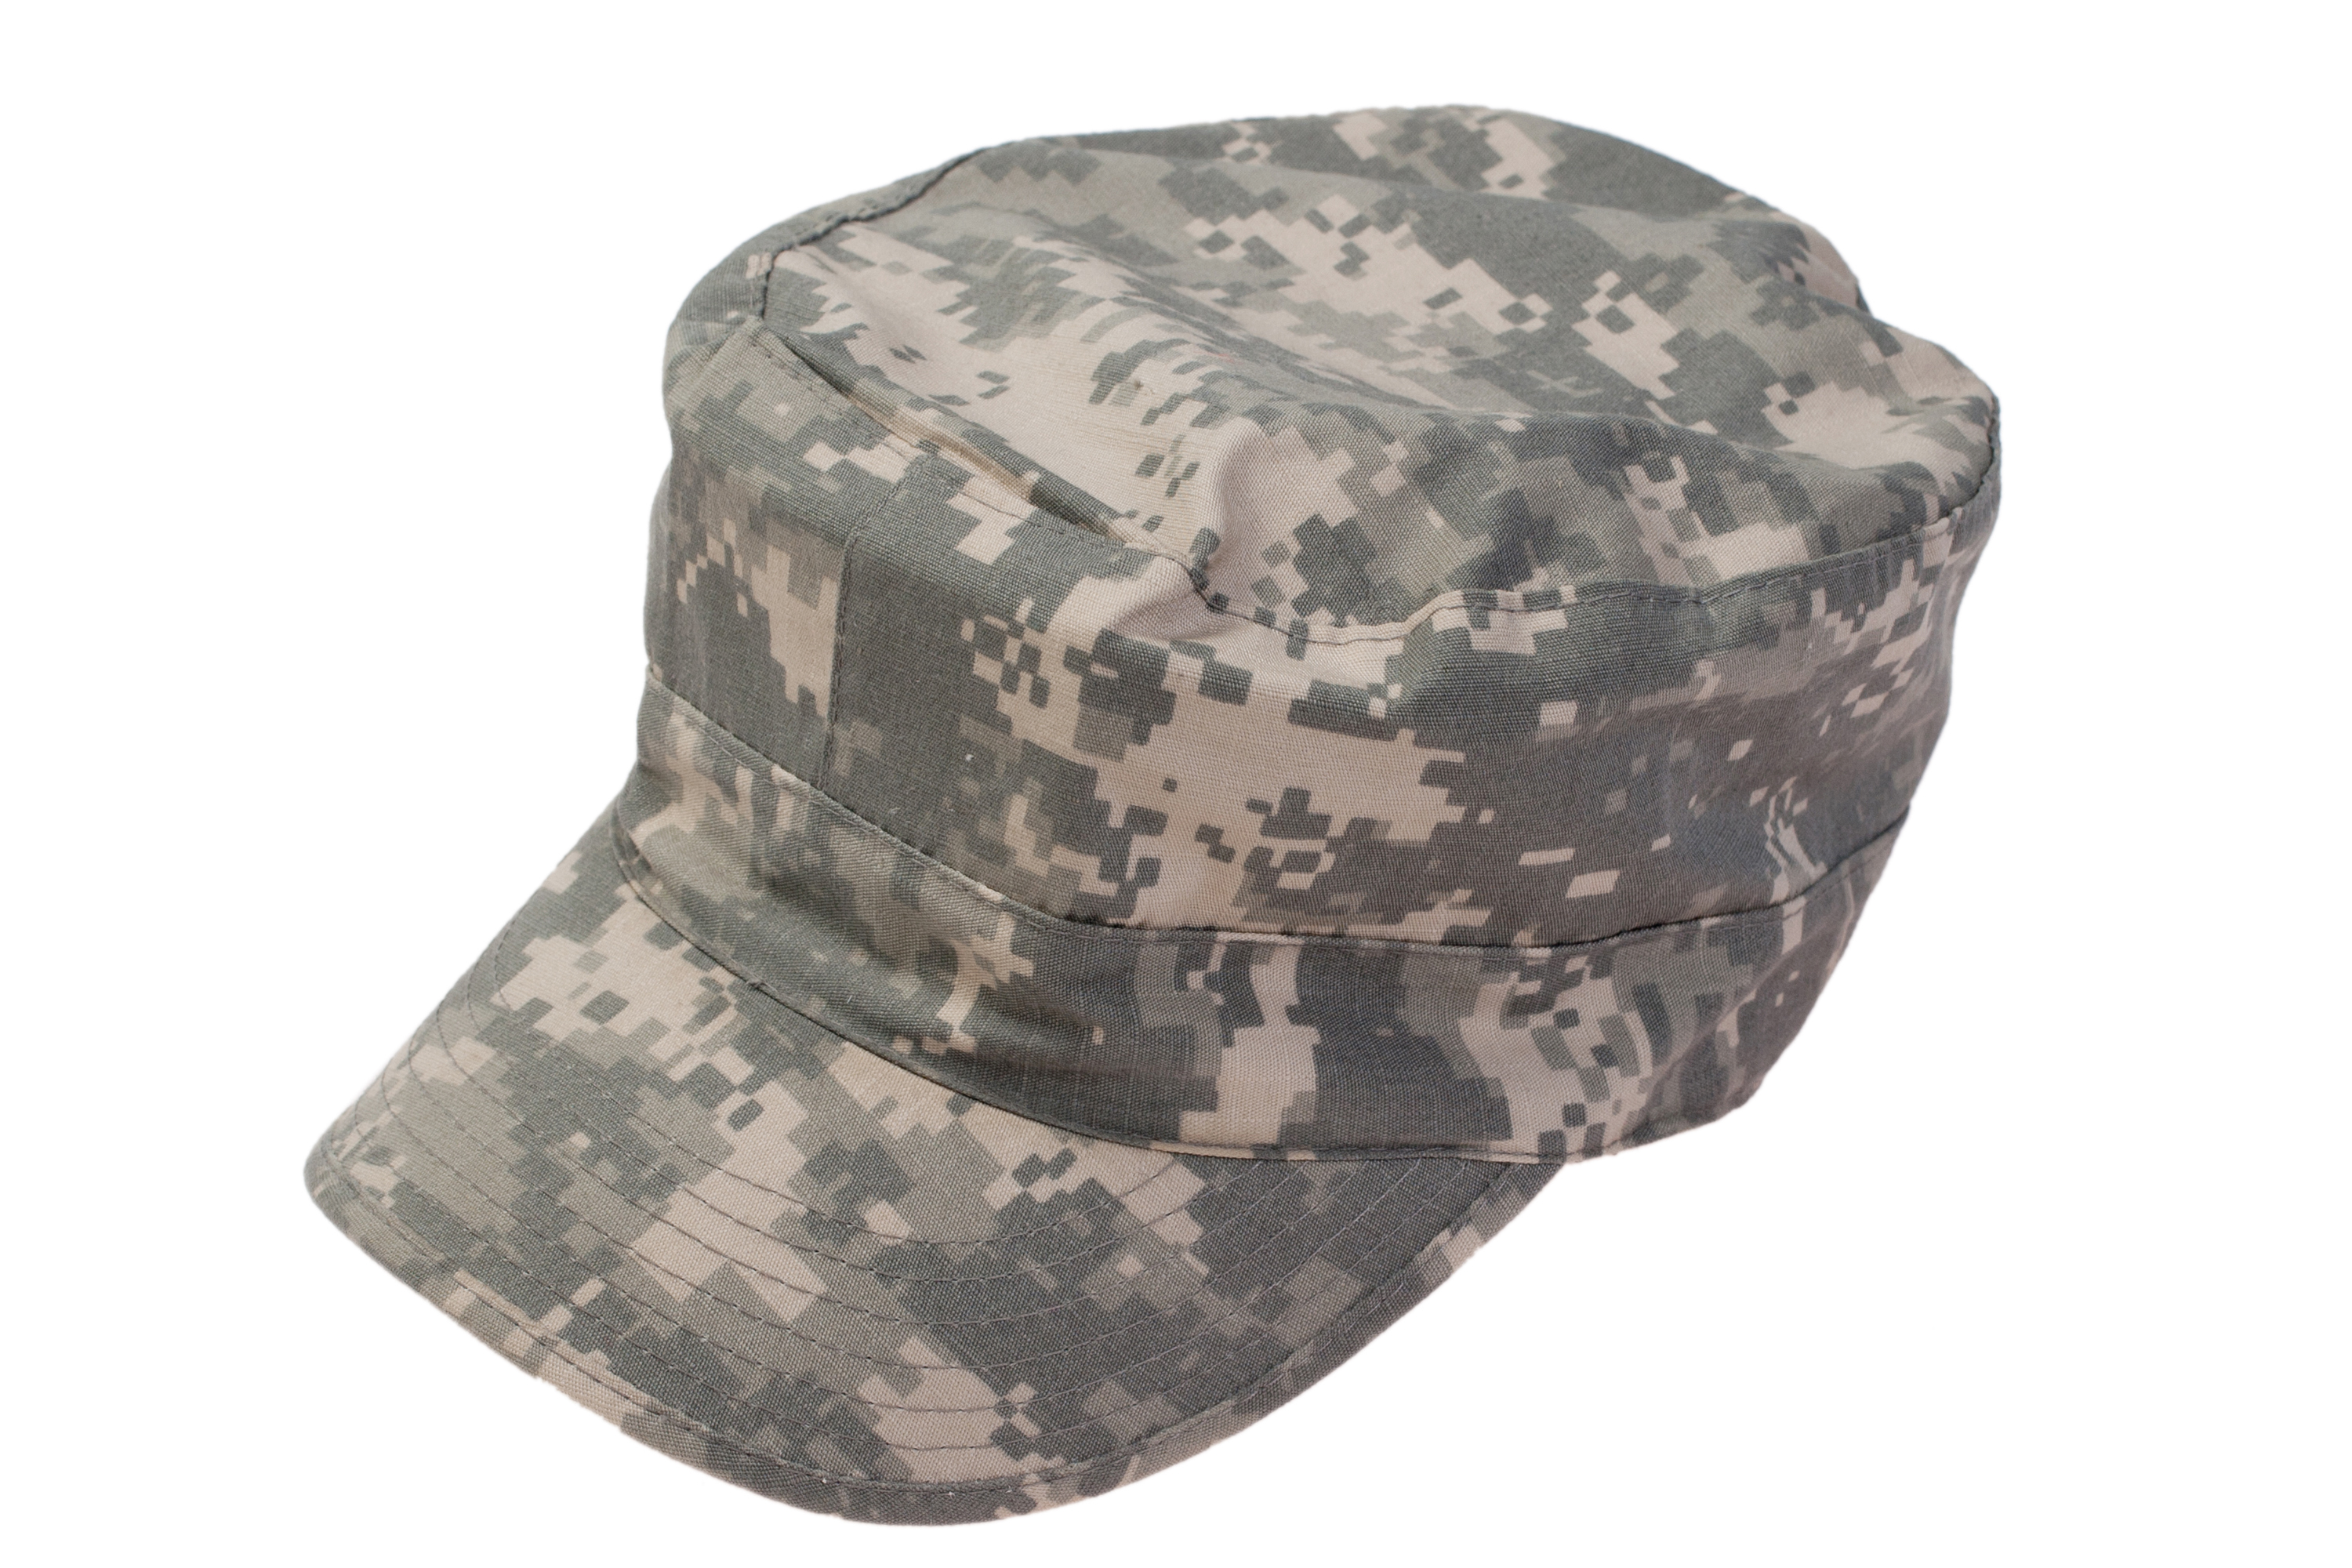 Bespoke military caps